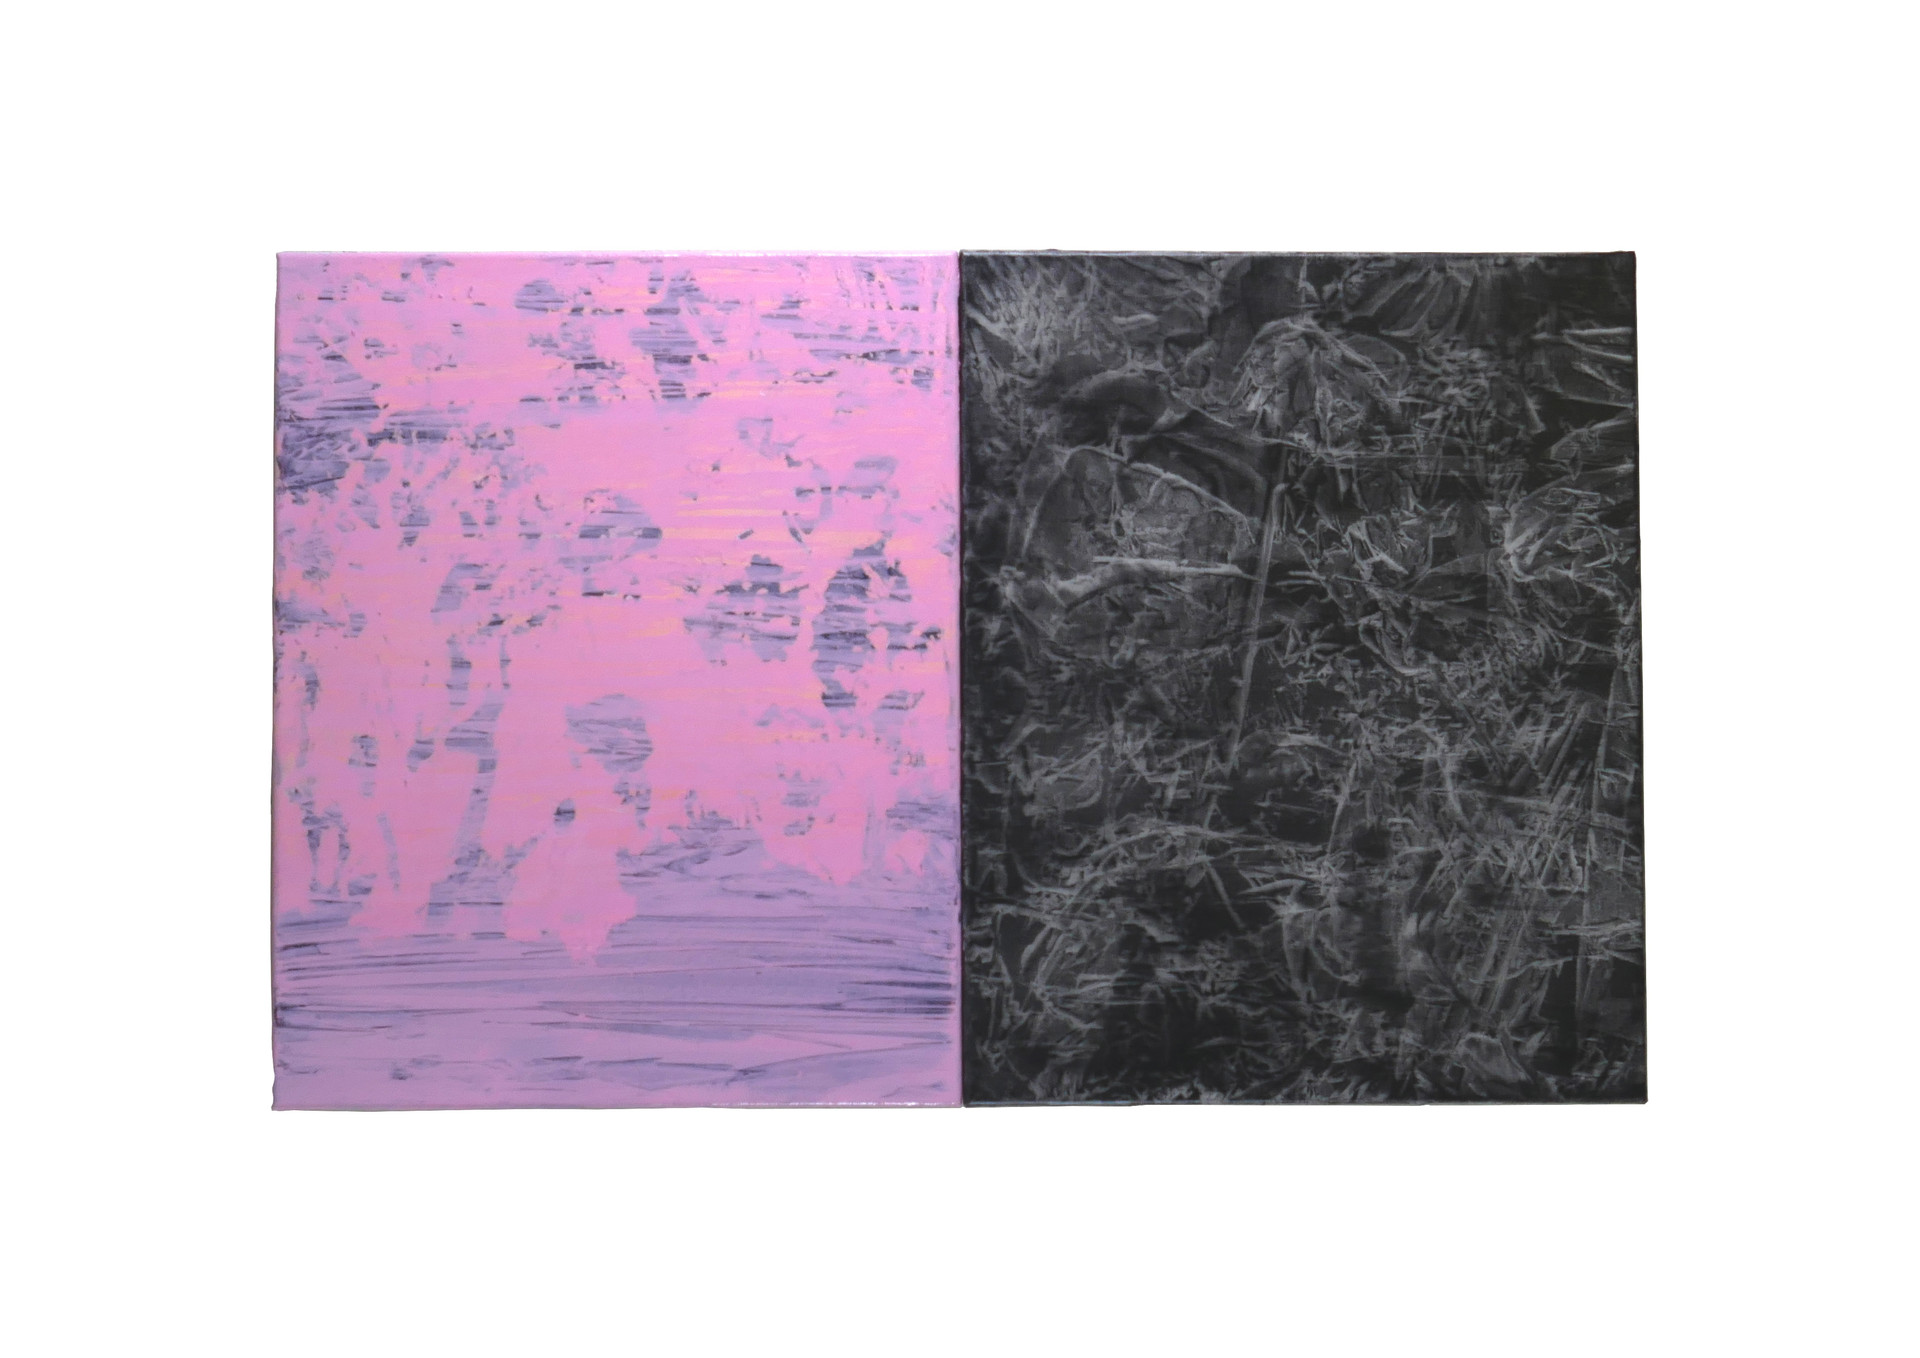 untitled, 2018, oil on linen, diptych 51 x 41cm each